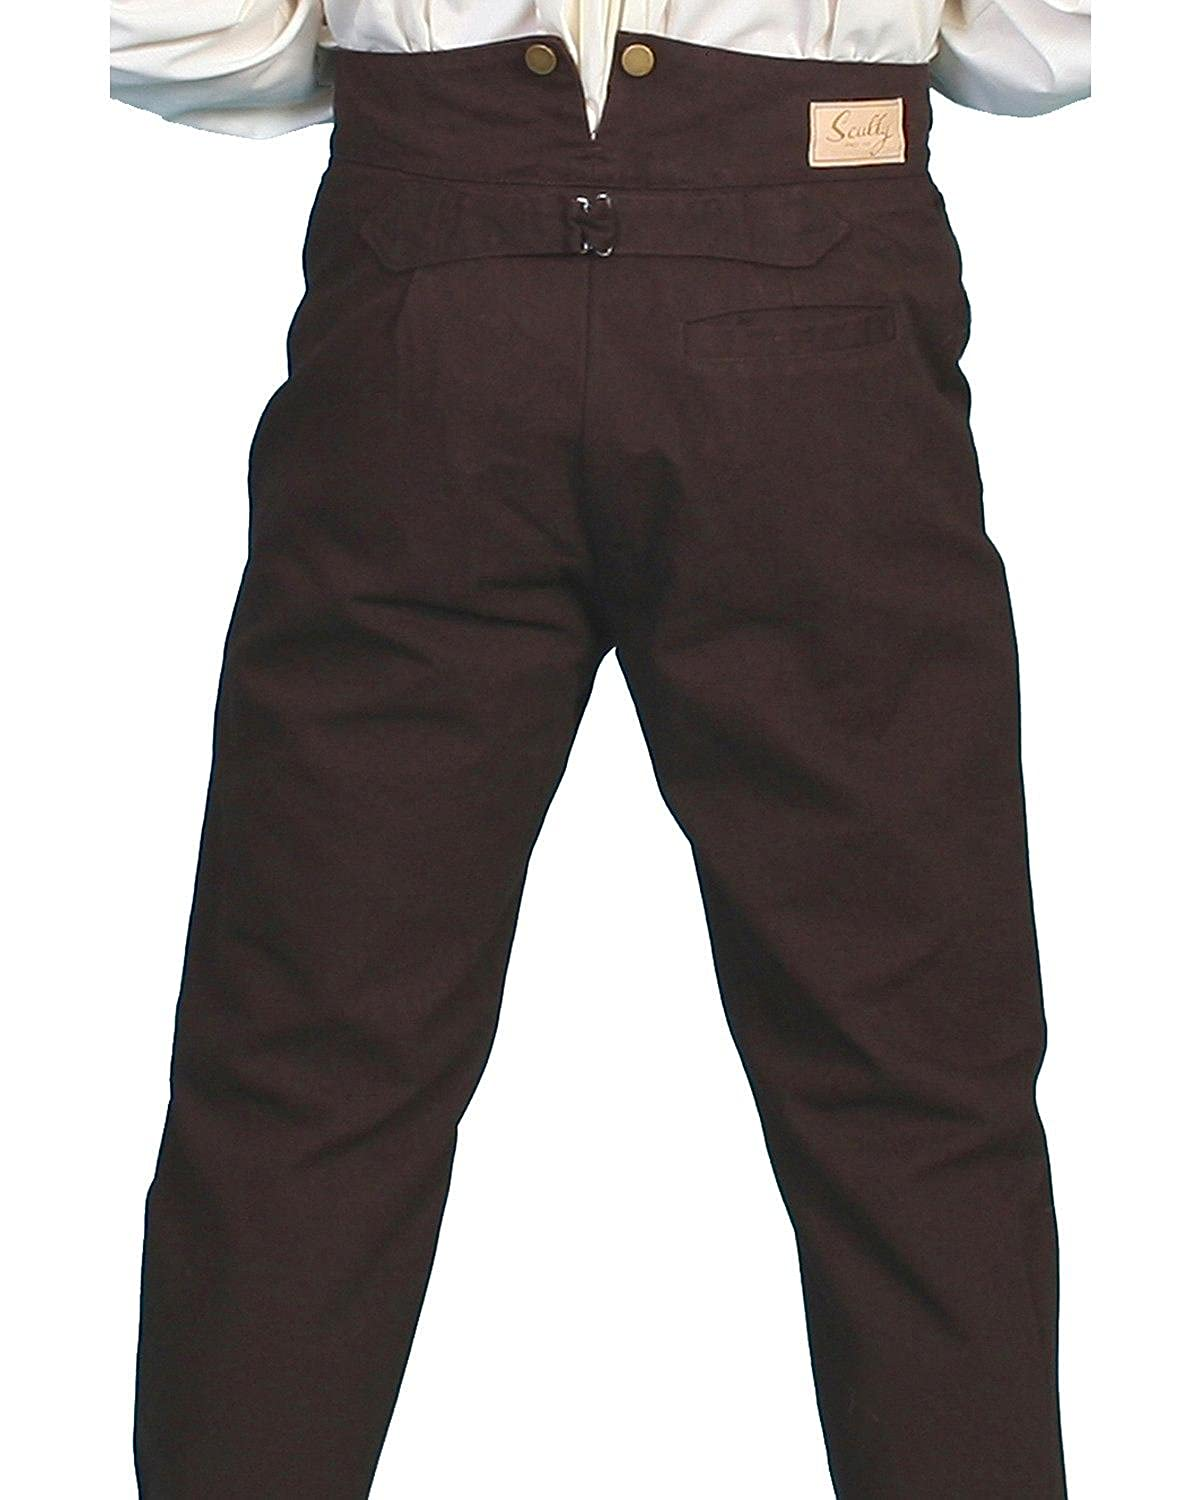 Men's Steampink Pants & Trousers Scully Rangewear Mens Rangewear Canvas Pants $51.90 AT vintagedancer.com